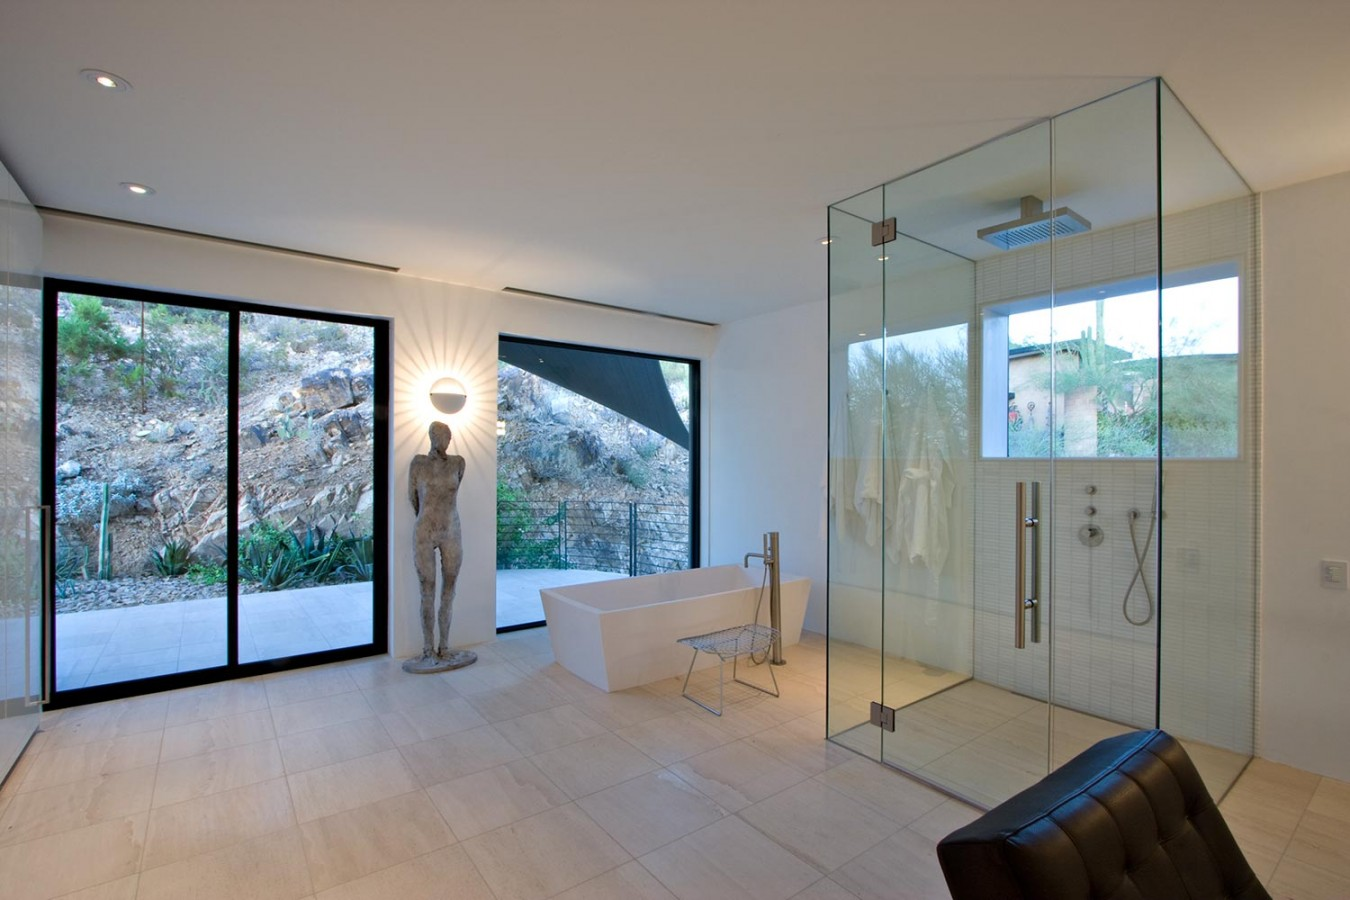 glass-shower-enclosure-01.jpg